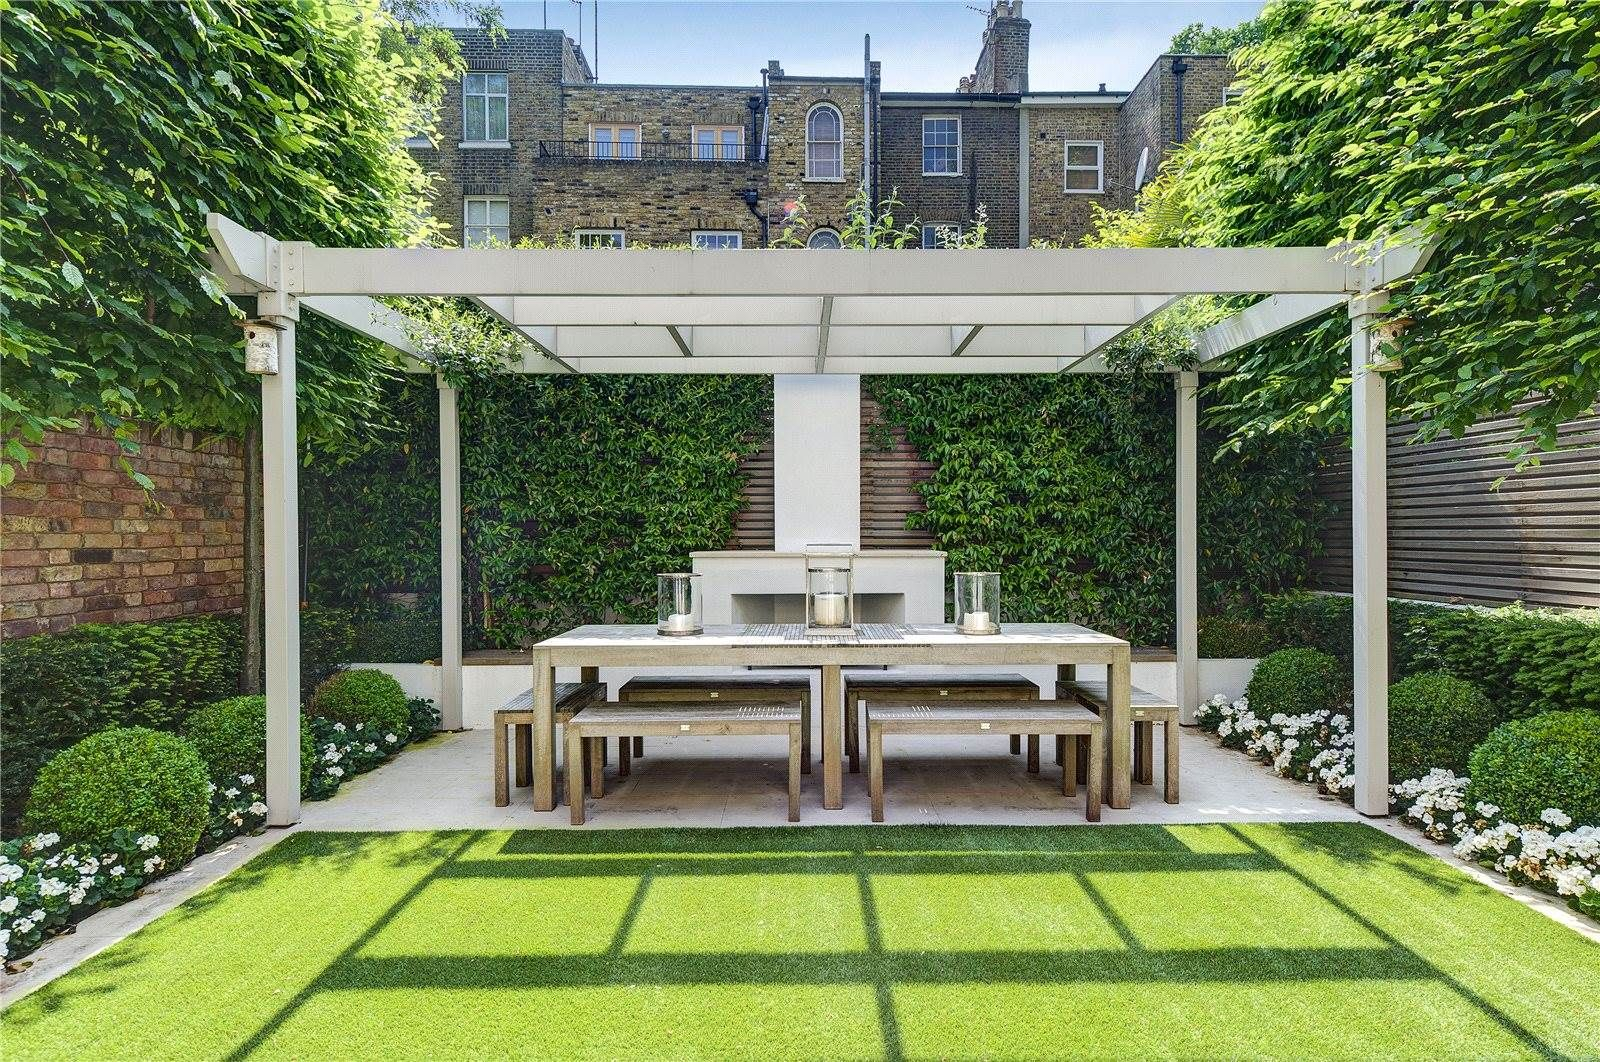 Netherton Grove, London, SW10, a Luxury Home for Sale in London ...